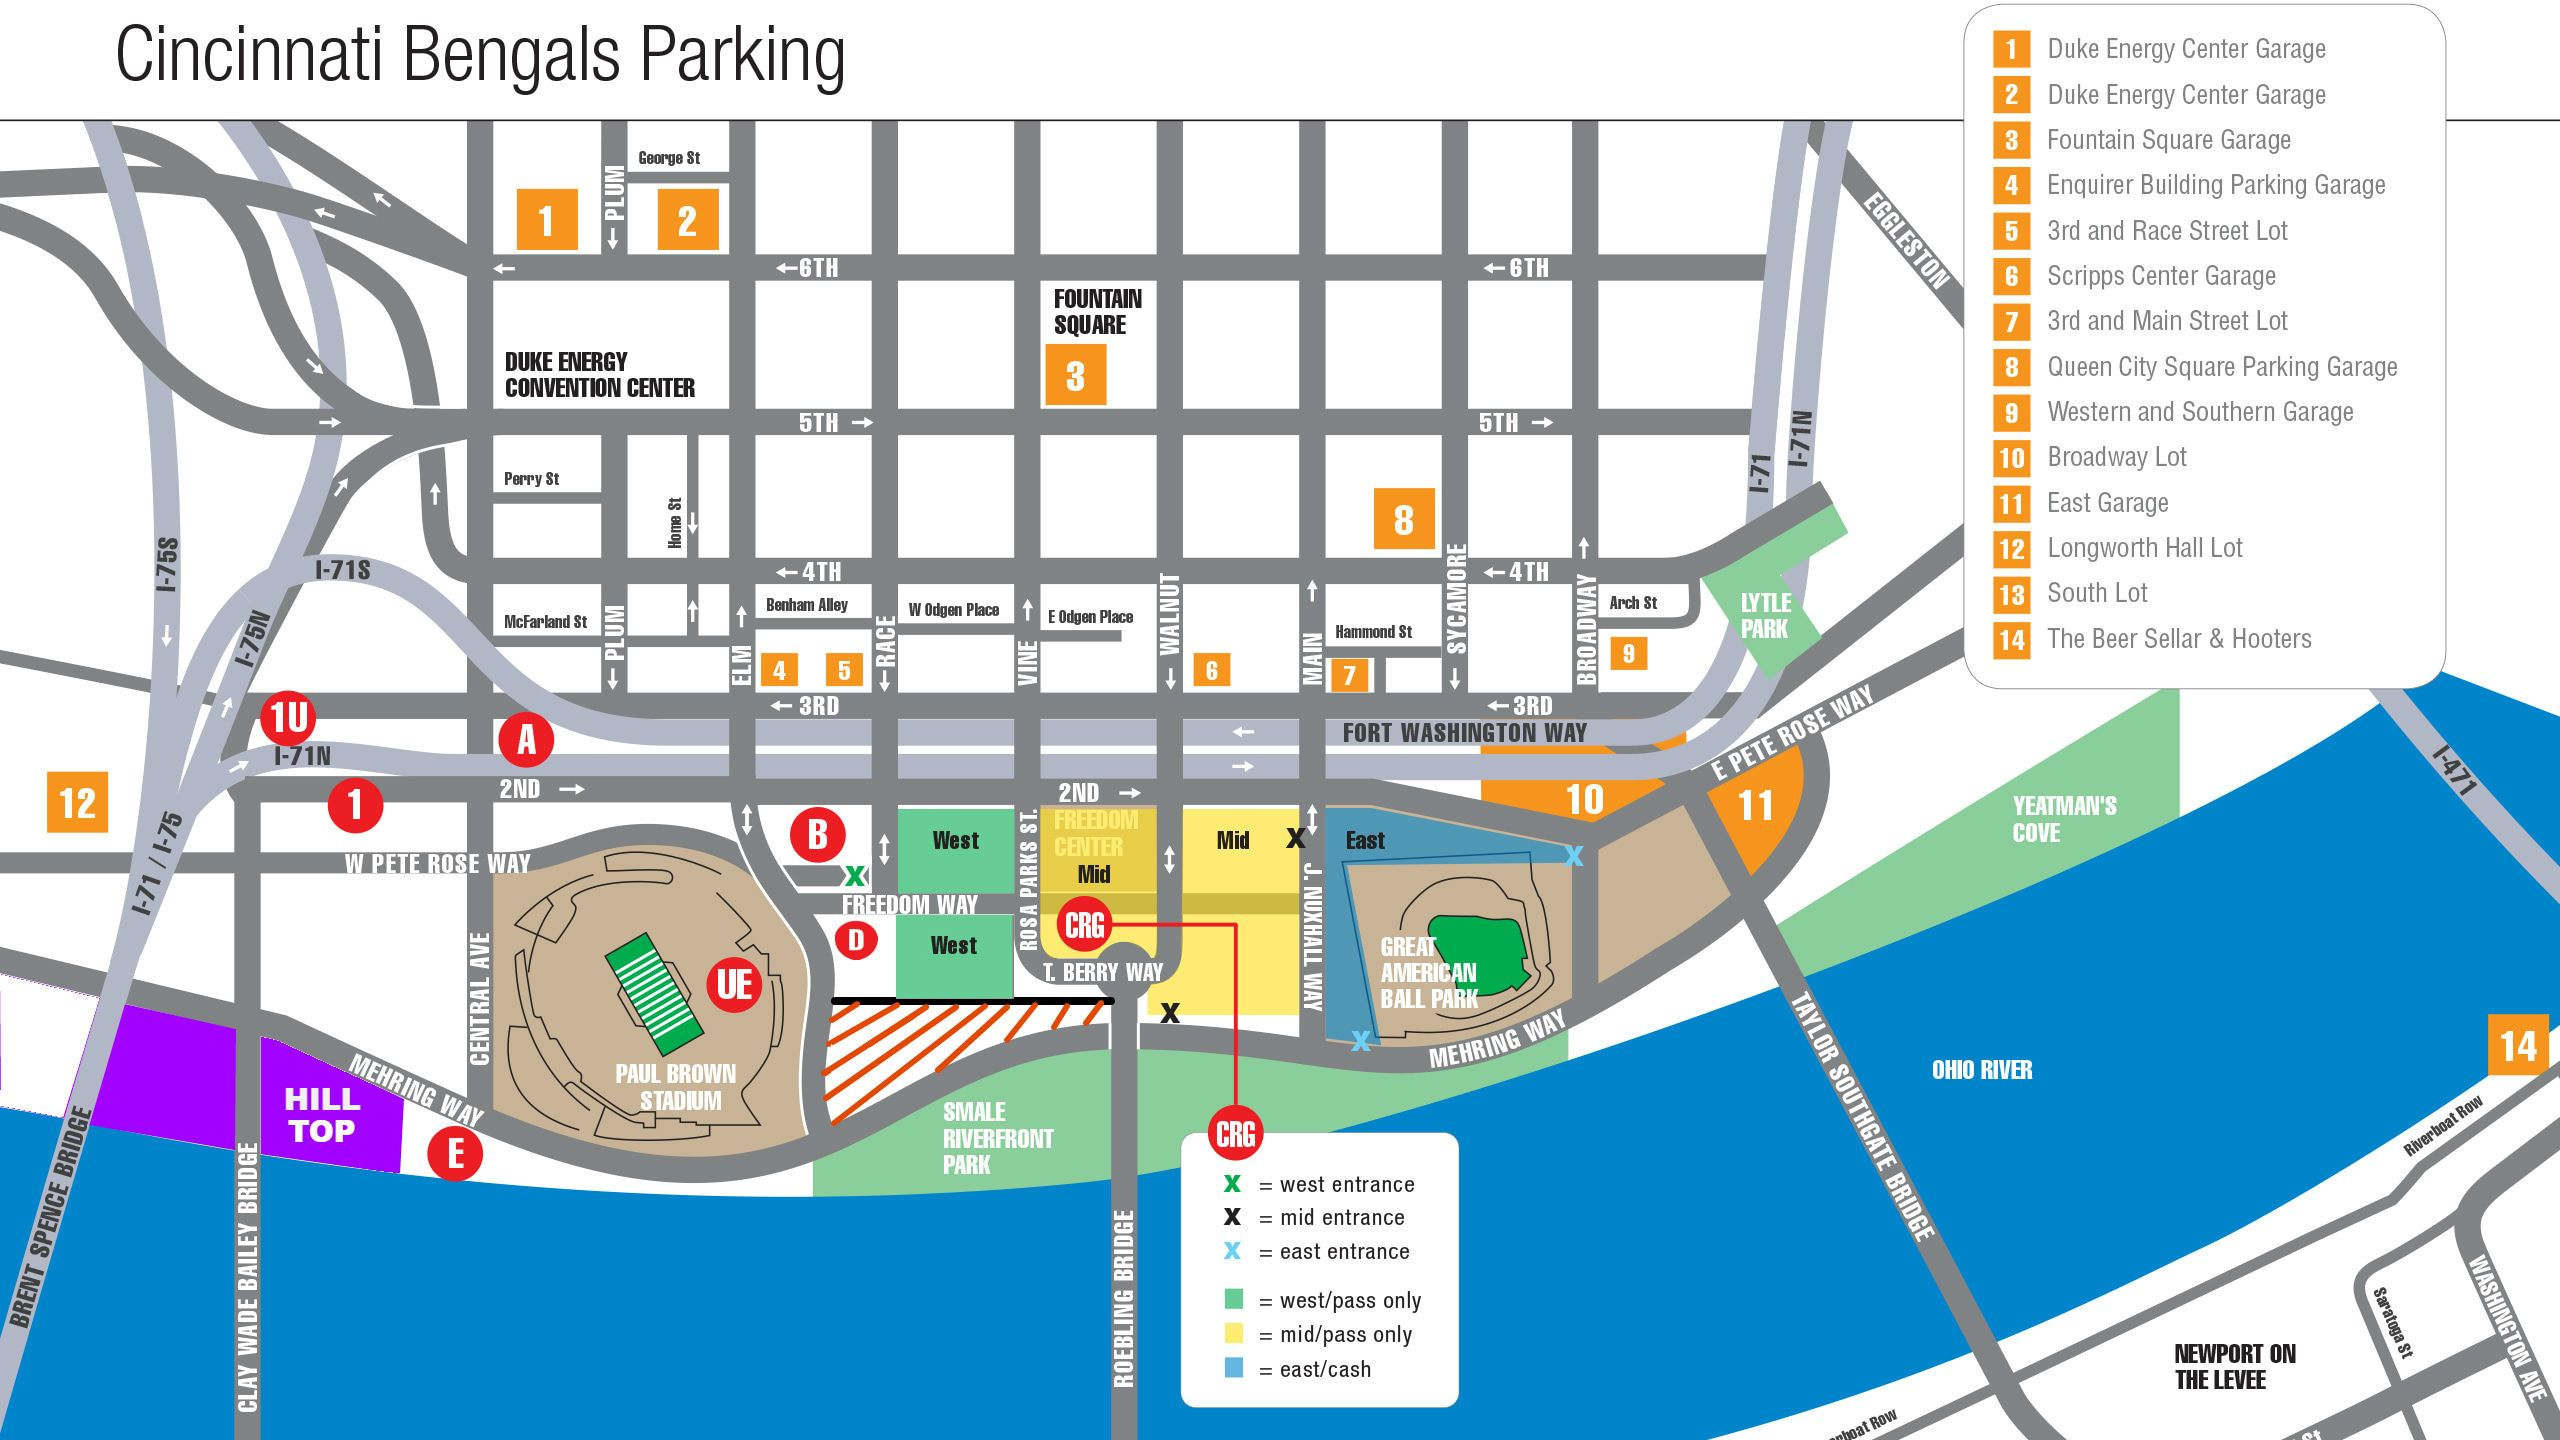 Parking Map updated June 2019